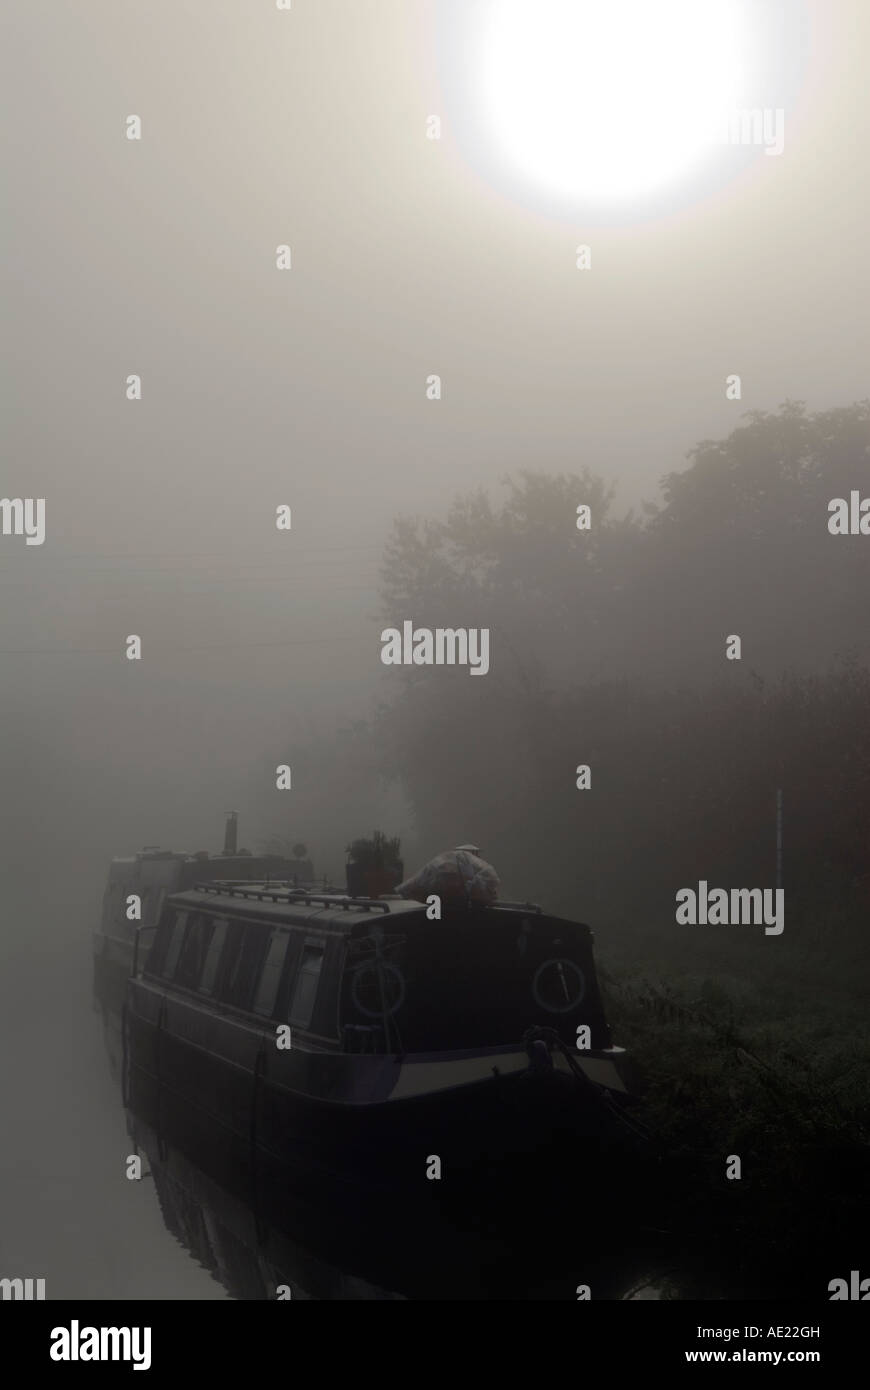 PICTURE CREDIT Doug Blane Moored narrowboat on a misty moring on the kennet and avon canal - Stock Image